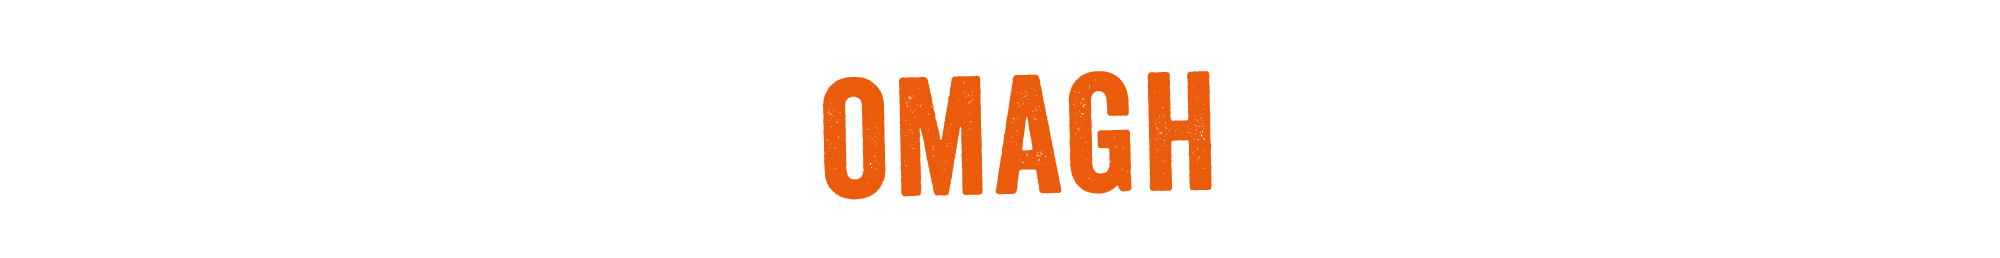 OMAGH-button-2.png